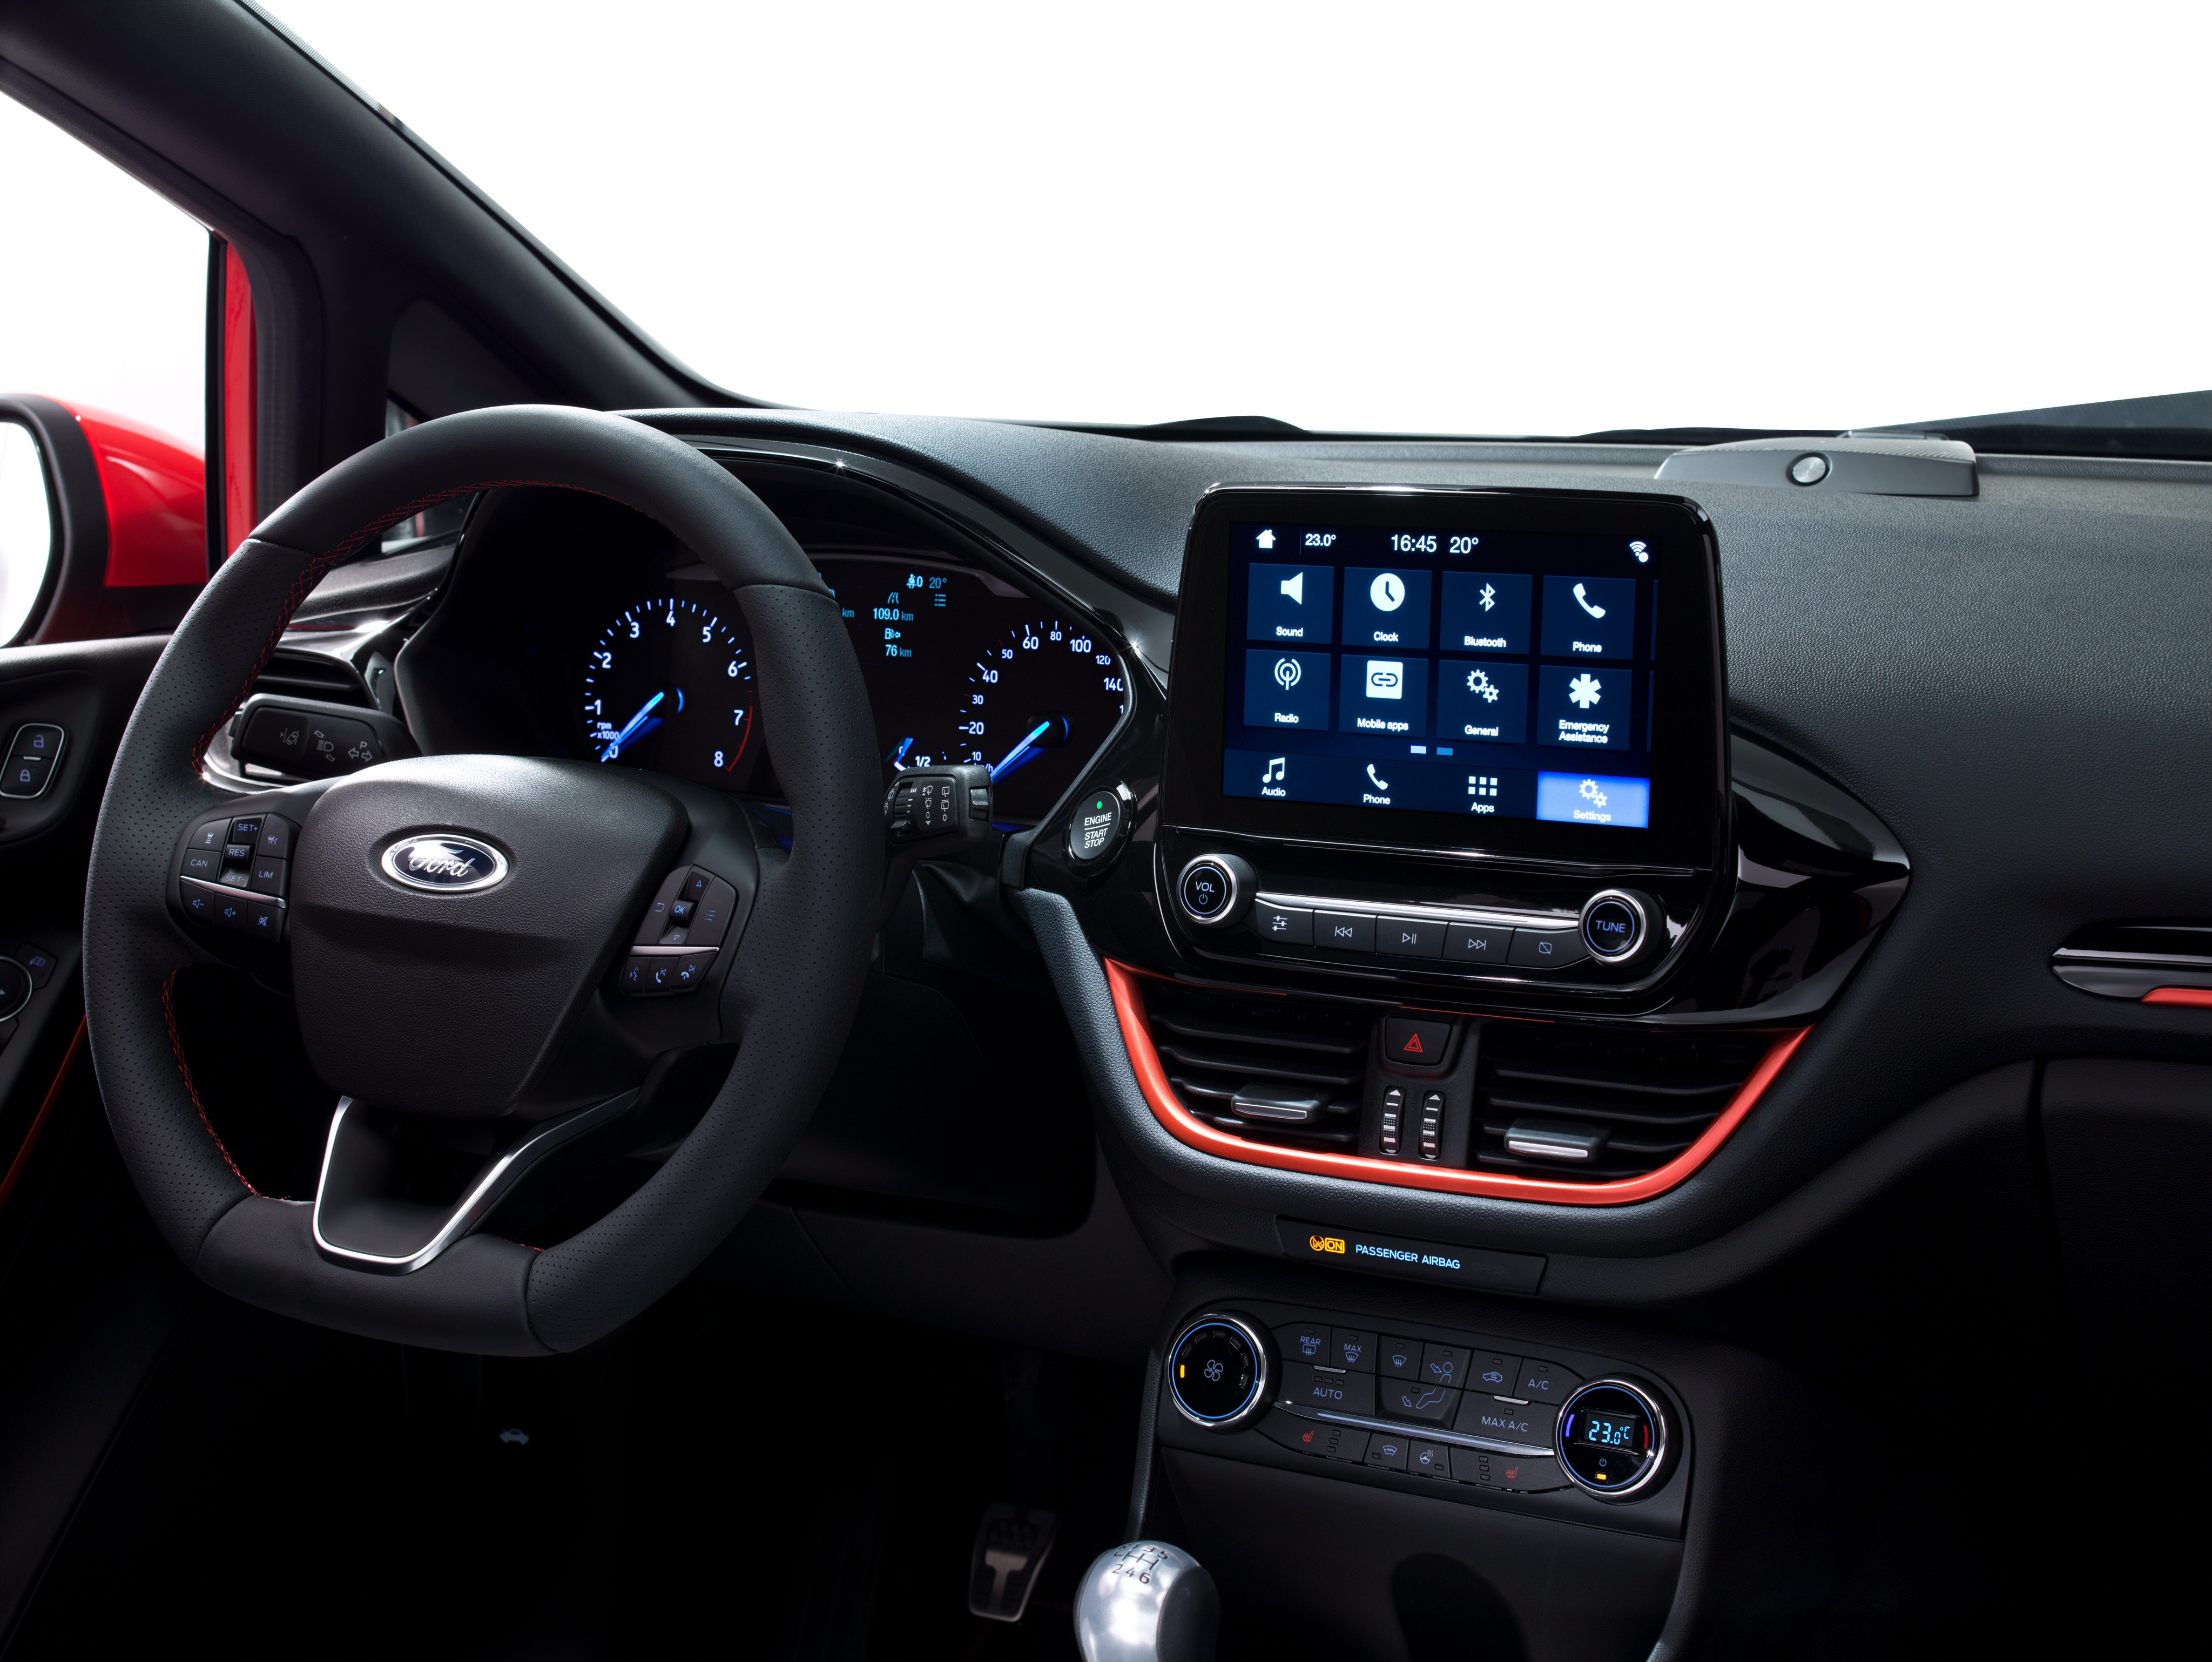 2017 Ford Fiesta Interior With 8 Inch Sync 3 Touchscreen Infotainment